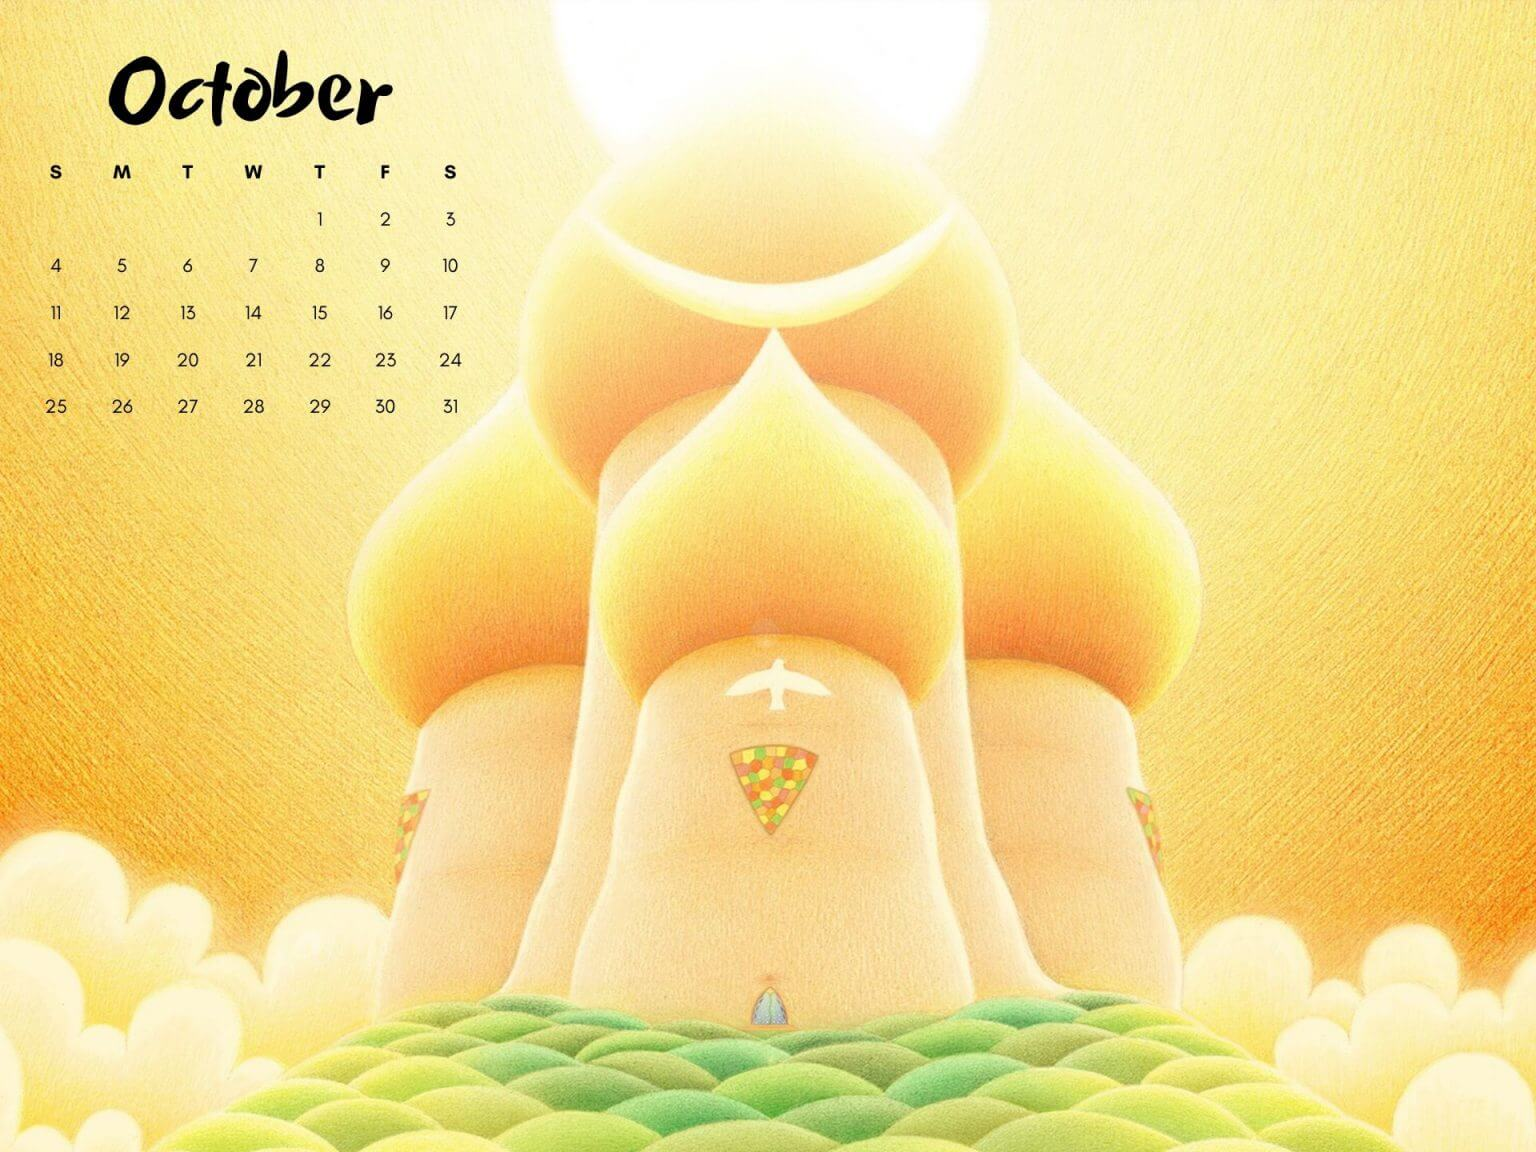 October 2020 Monthly Calendar Wallpaper